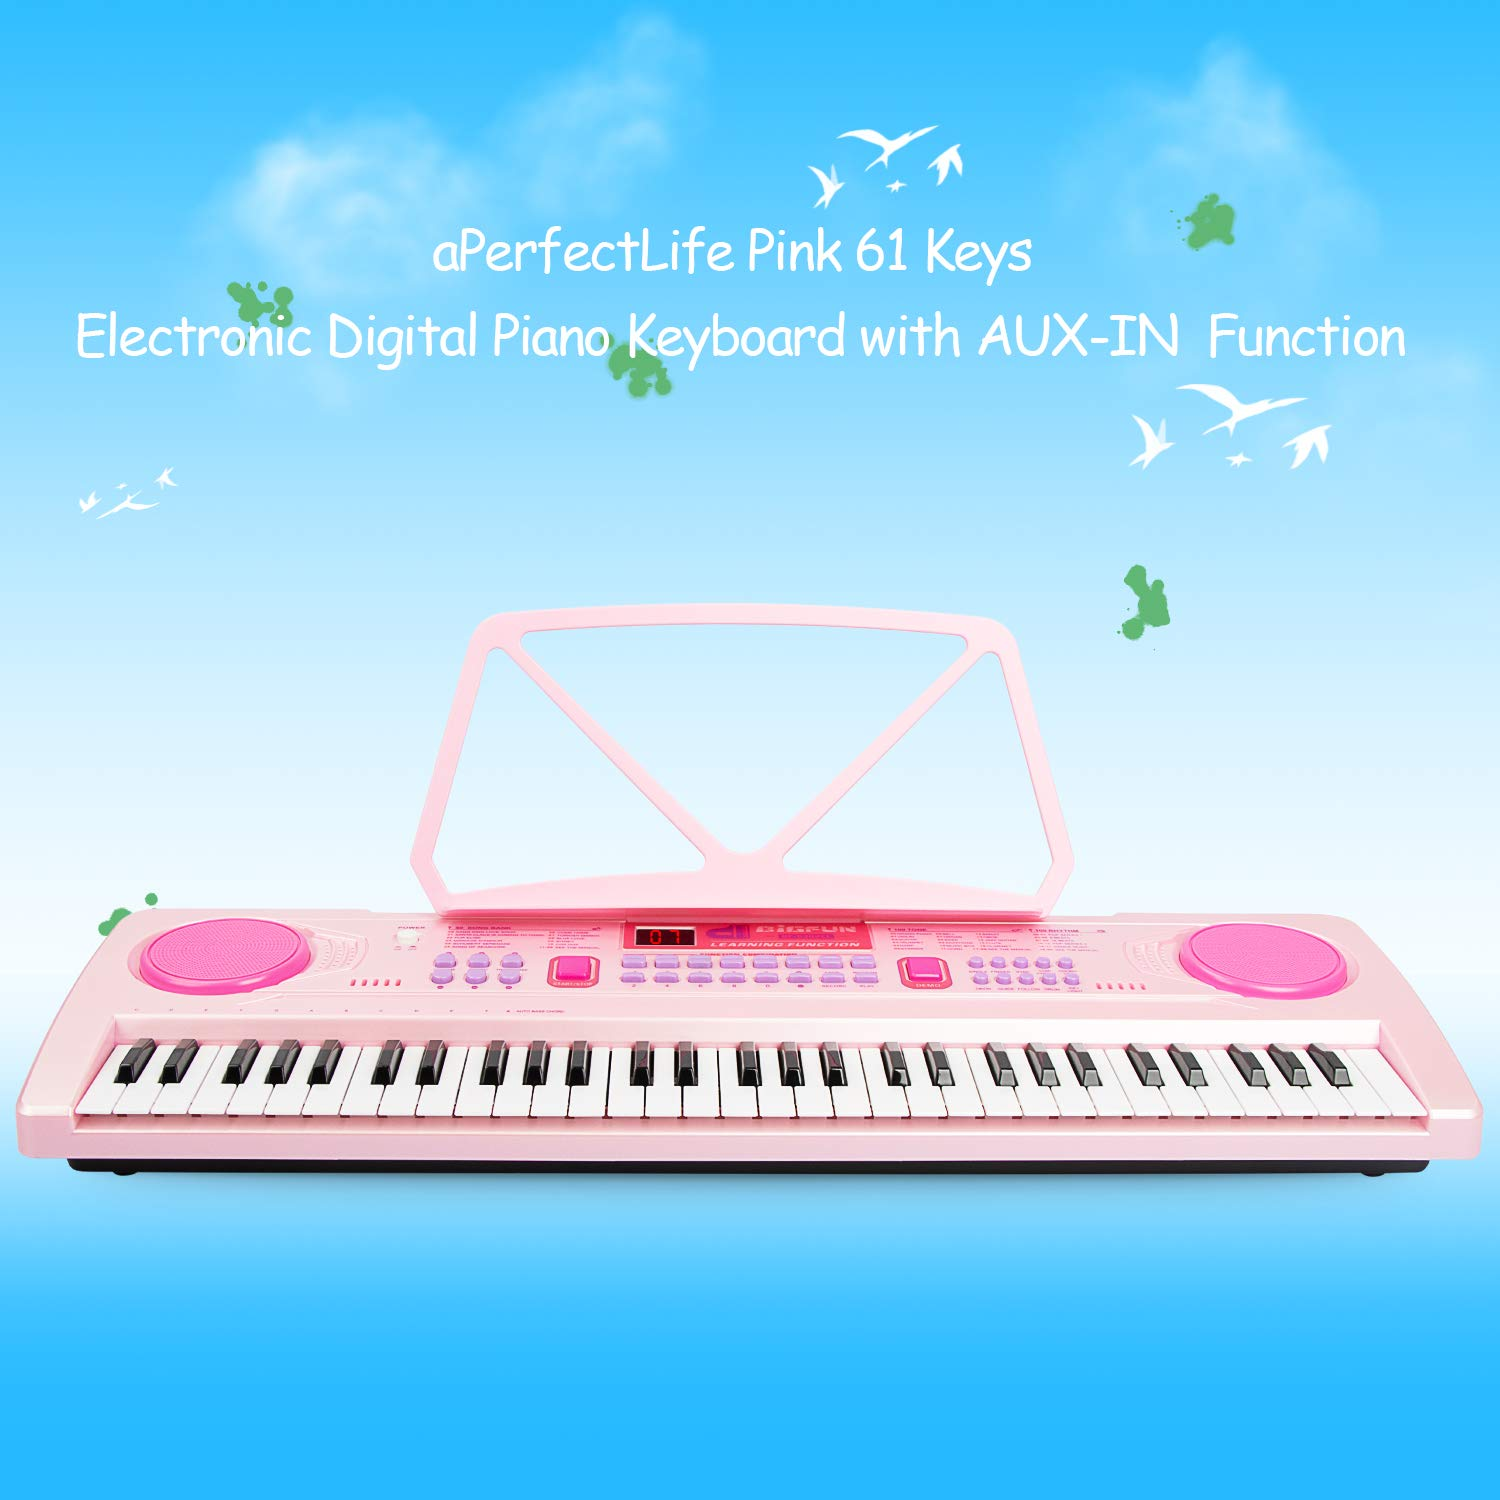 aPerfectLife 25'' Charging Piano Keyboard for Kids 61 Keys Multifunction Portable Piano Electronic Keyboard Music Instrument for Kids Early Learning Educational Toy (Pink) by aPerfectLife (Image #4)